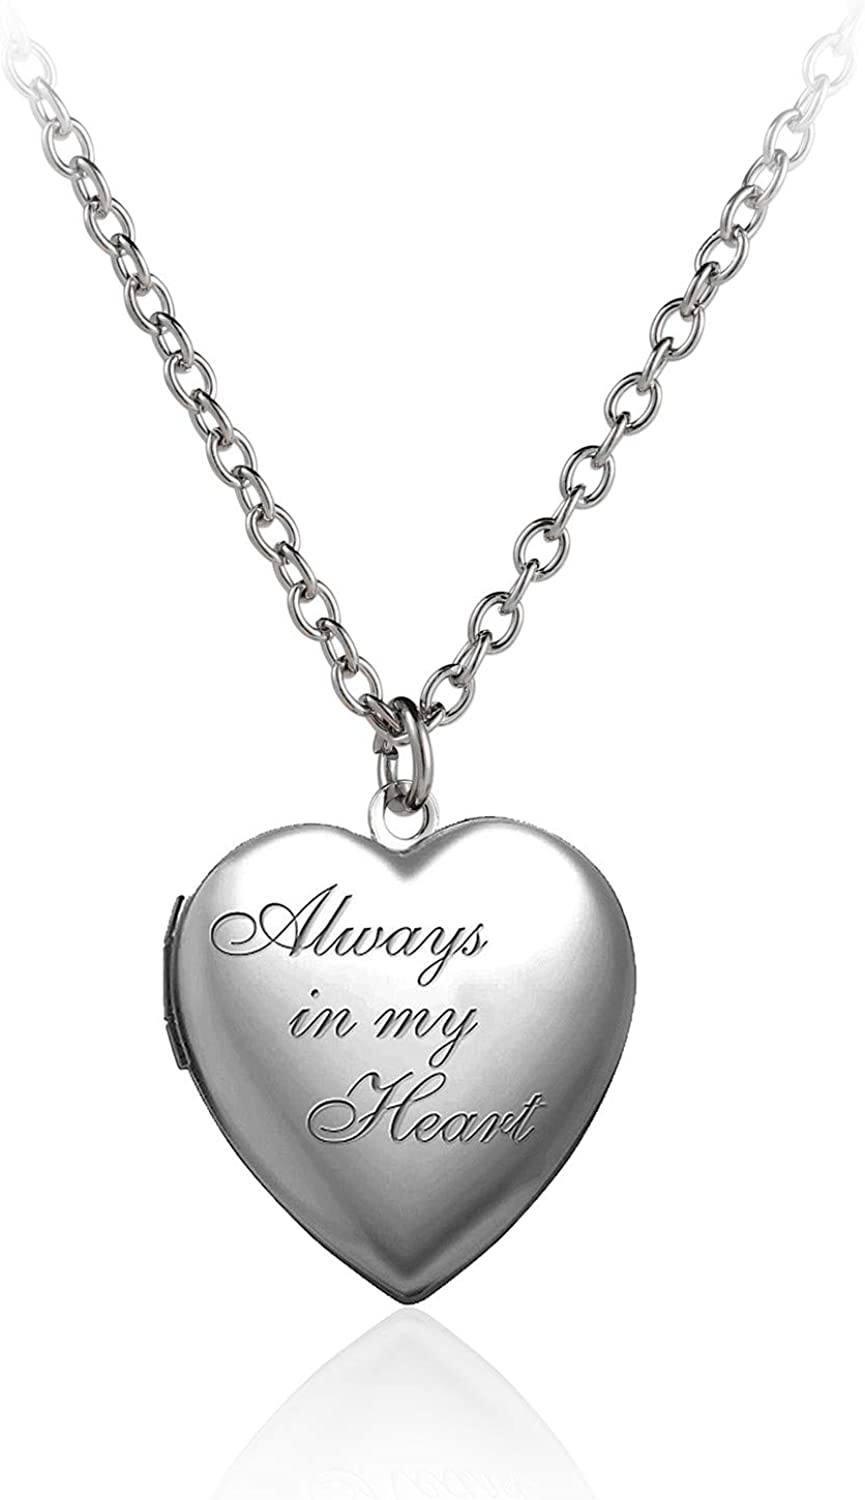 Caiyao excellence Engraved Love Heart Holds Locket N Pendant Latest item Pictures Photo